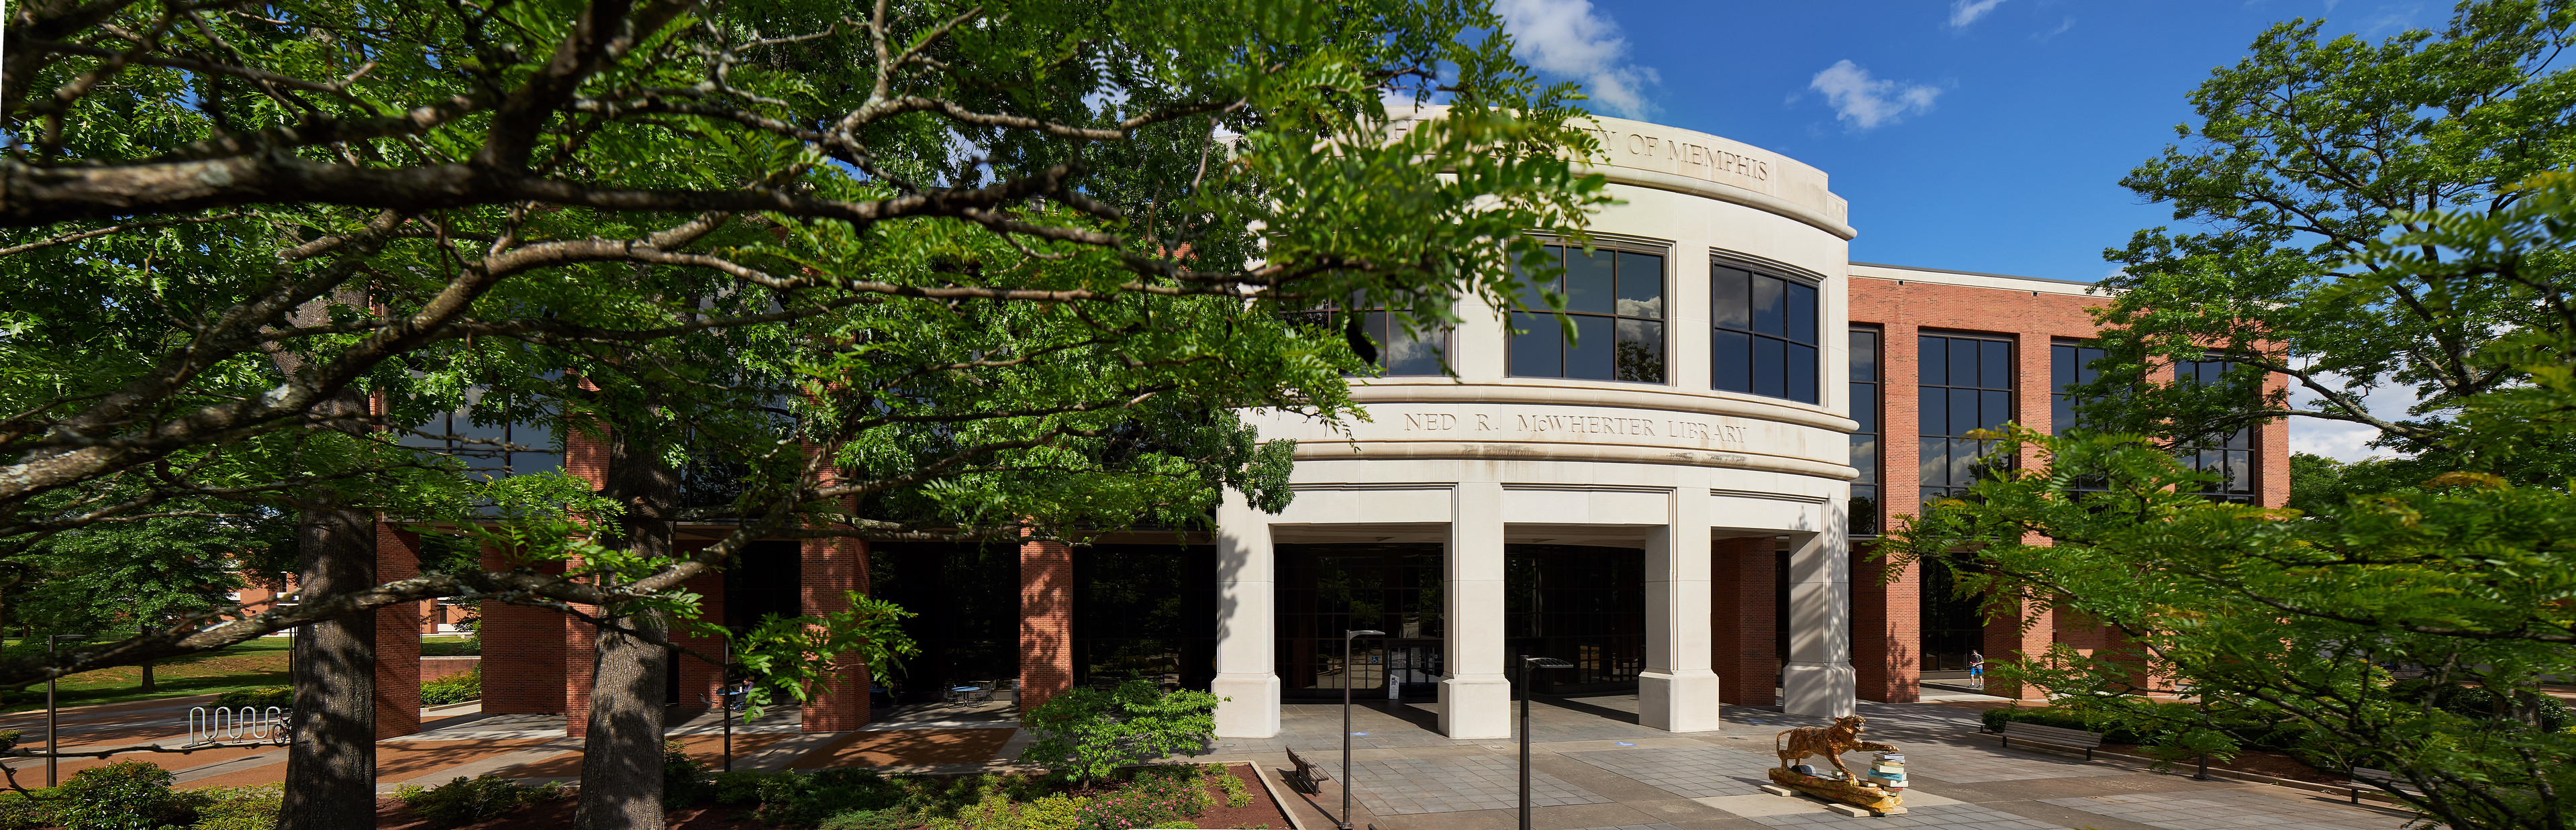 McWherter Library